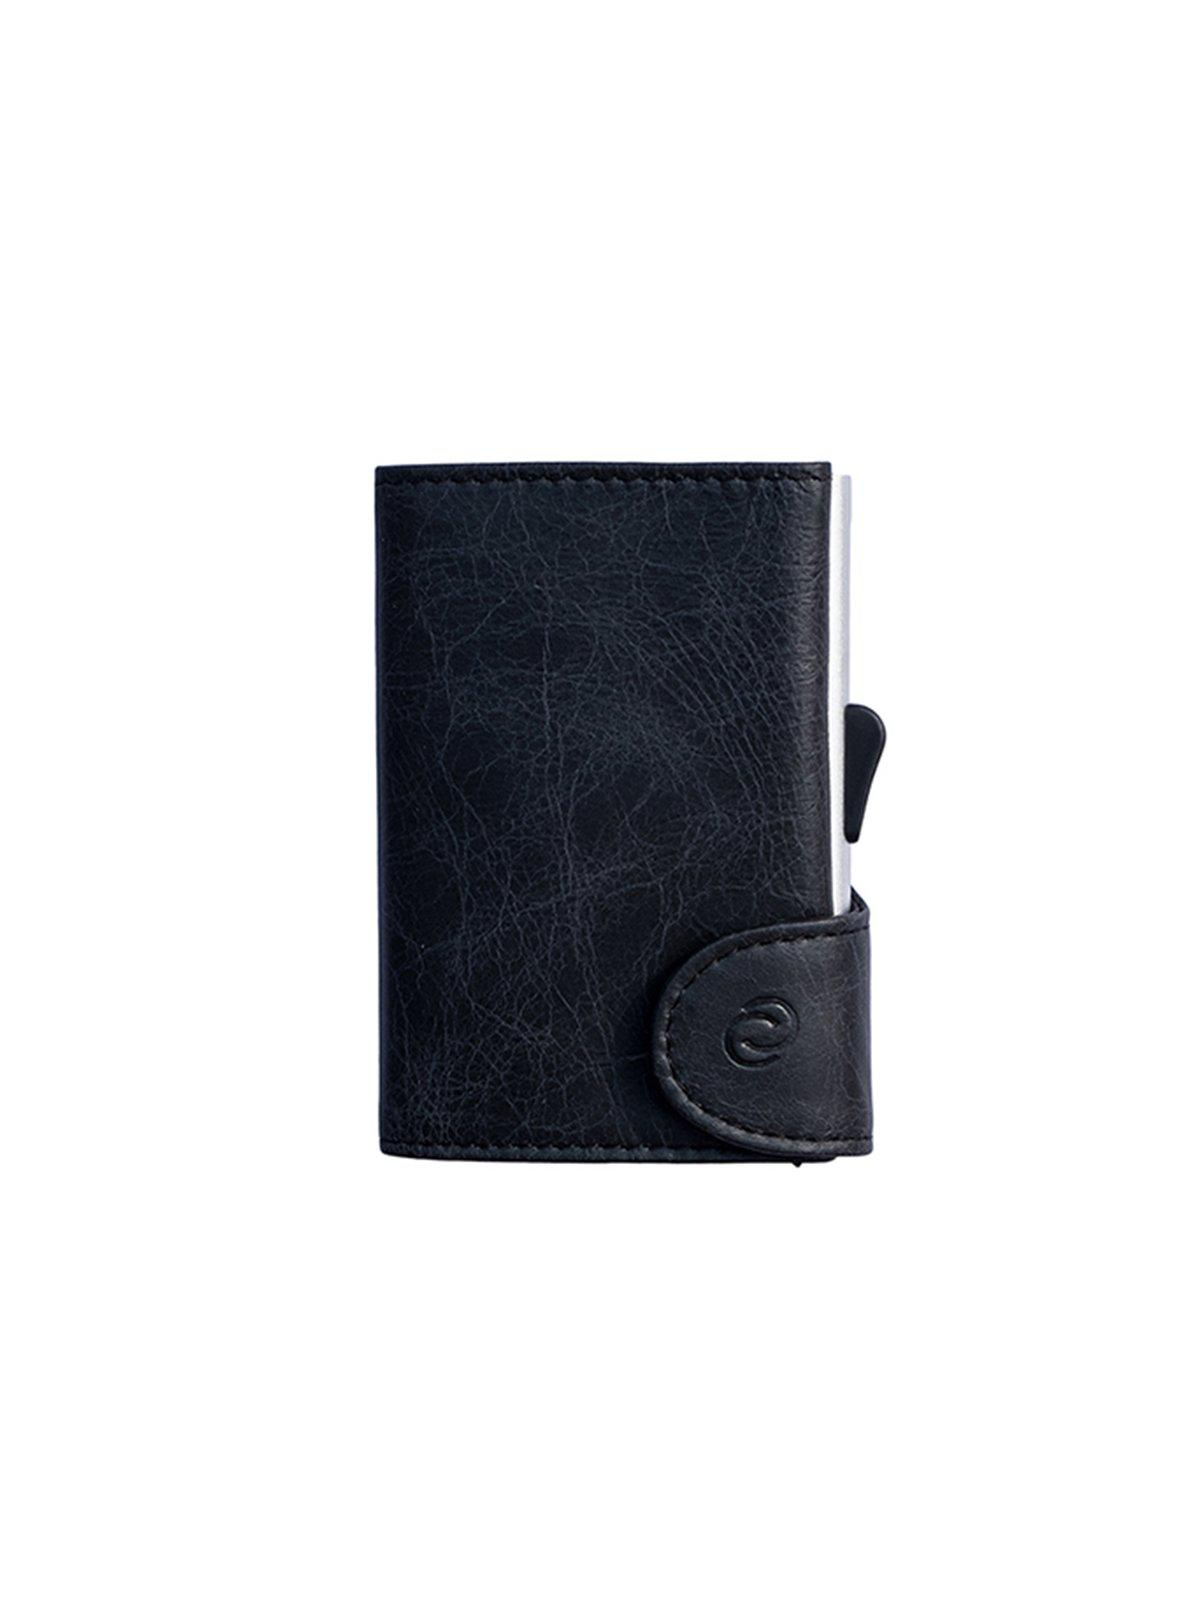 C-Secure Italian Leather RFID Wallet Blackwood - MORE by Morello Indonesia 6025db05bb